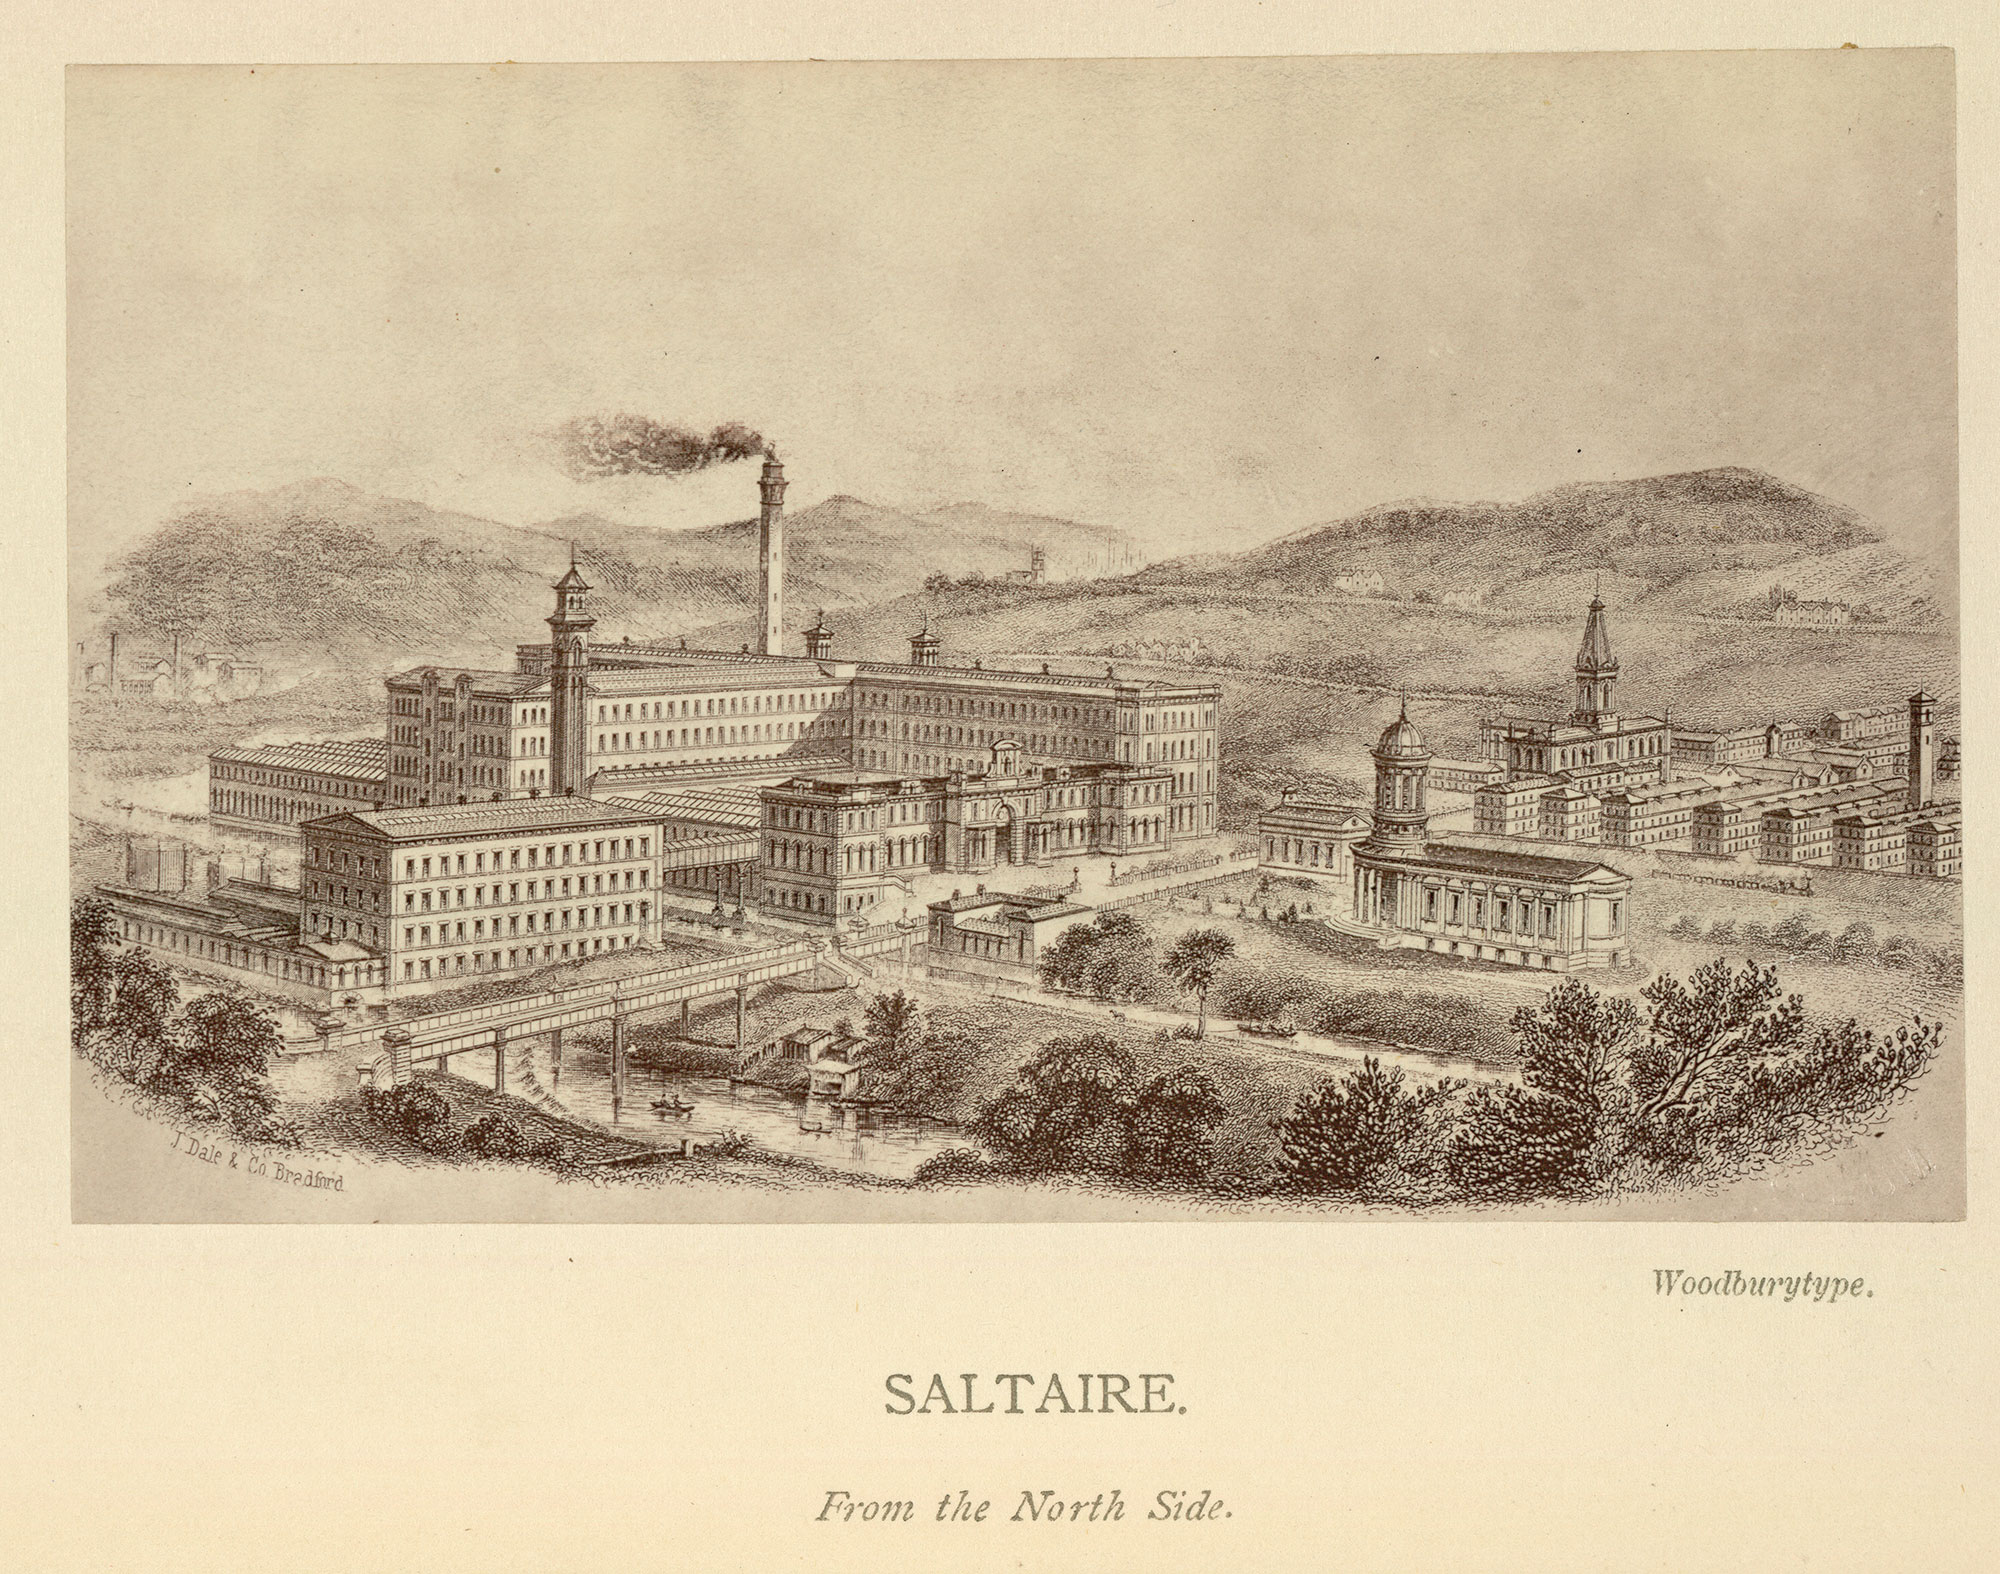 Illustration of Saltaire, a model village founded for textile workers near Bradford